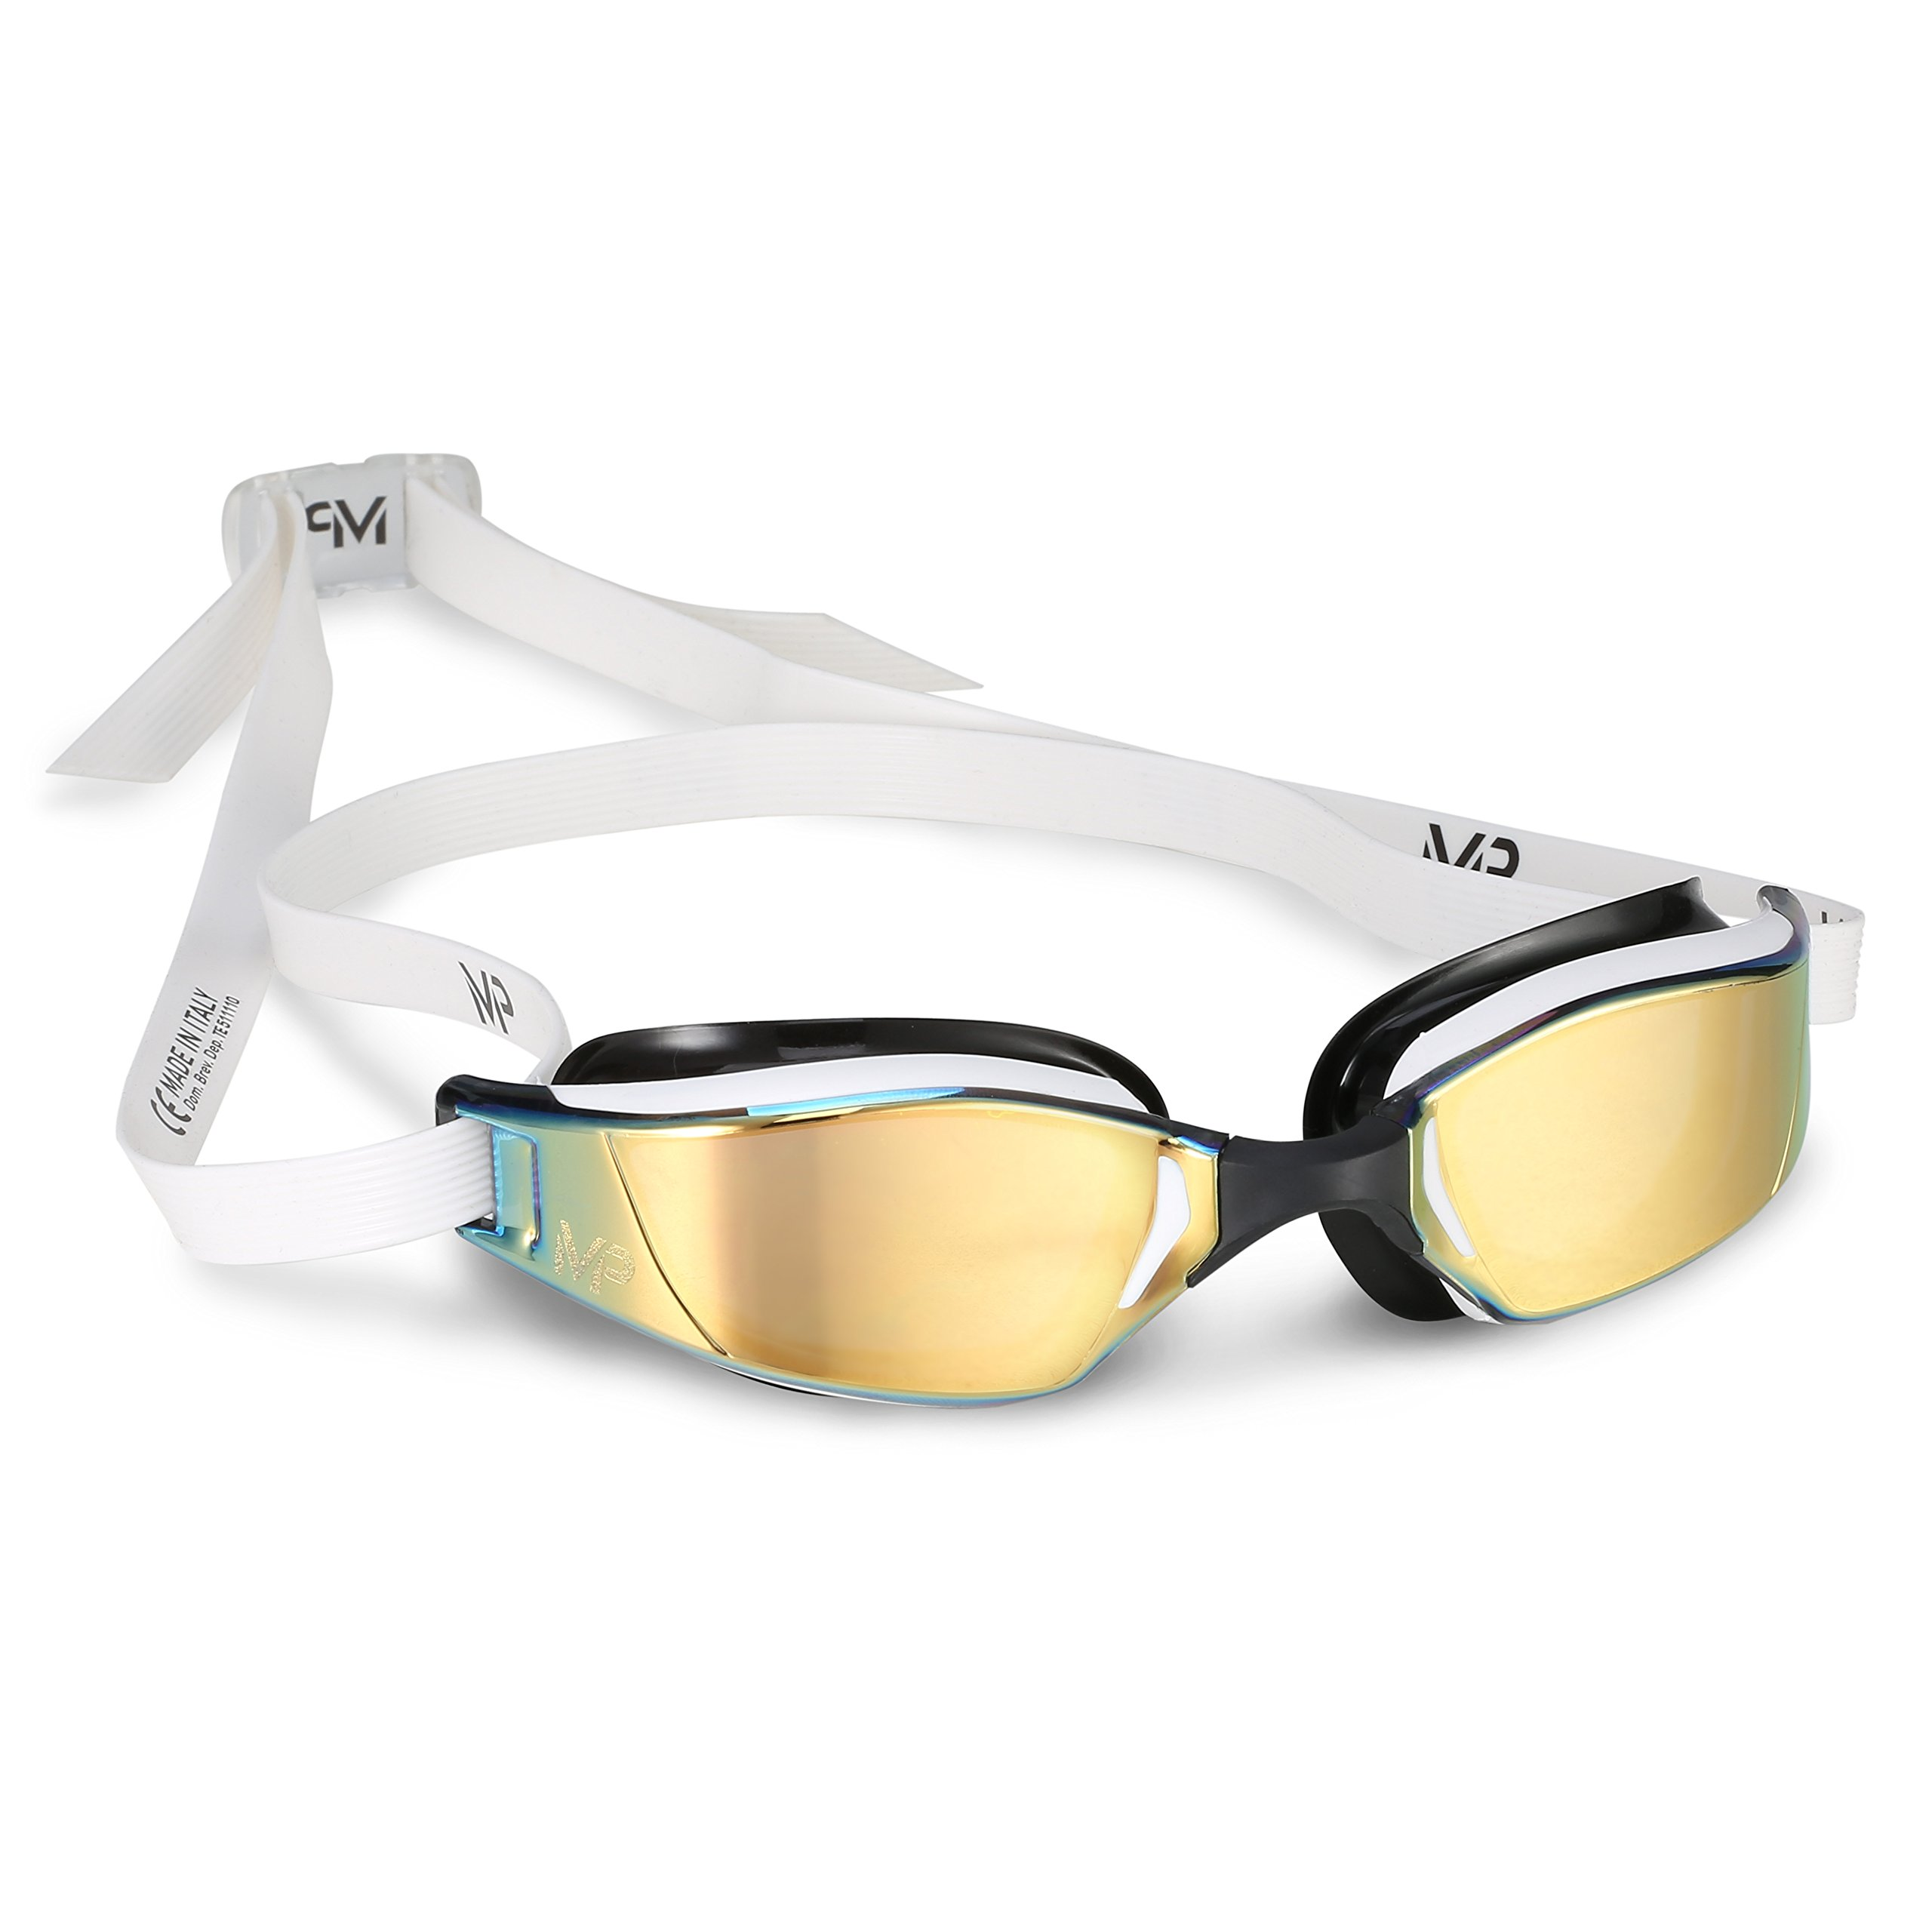 MP Michael Phelps XCEED Swimming Goggles, Mirrored Lens, White/Black Frame